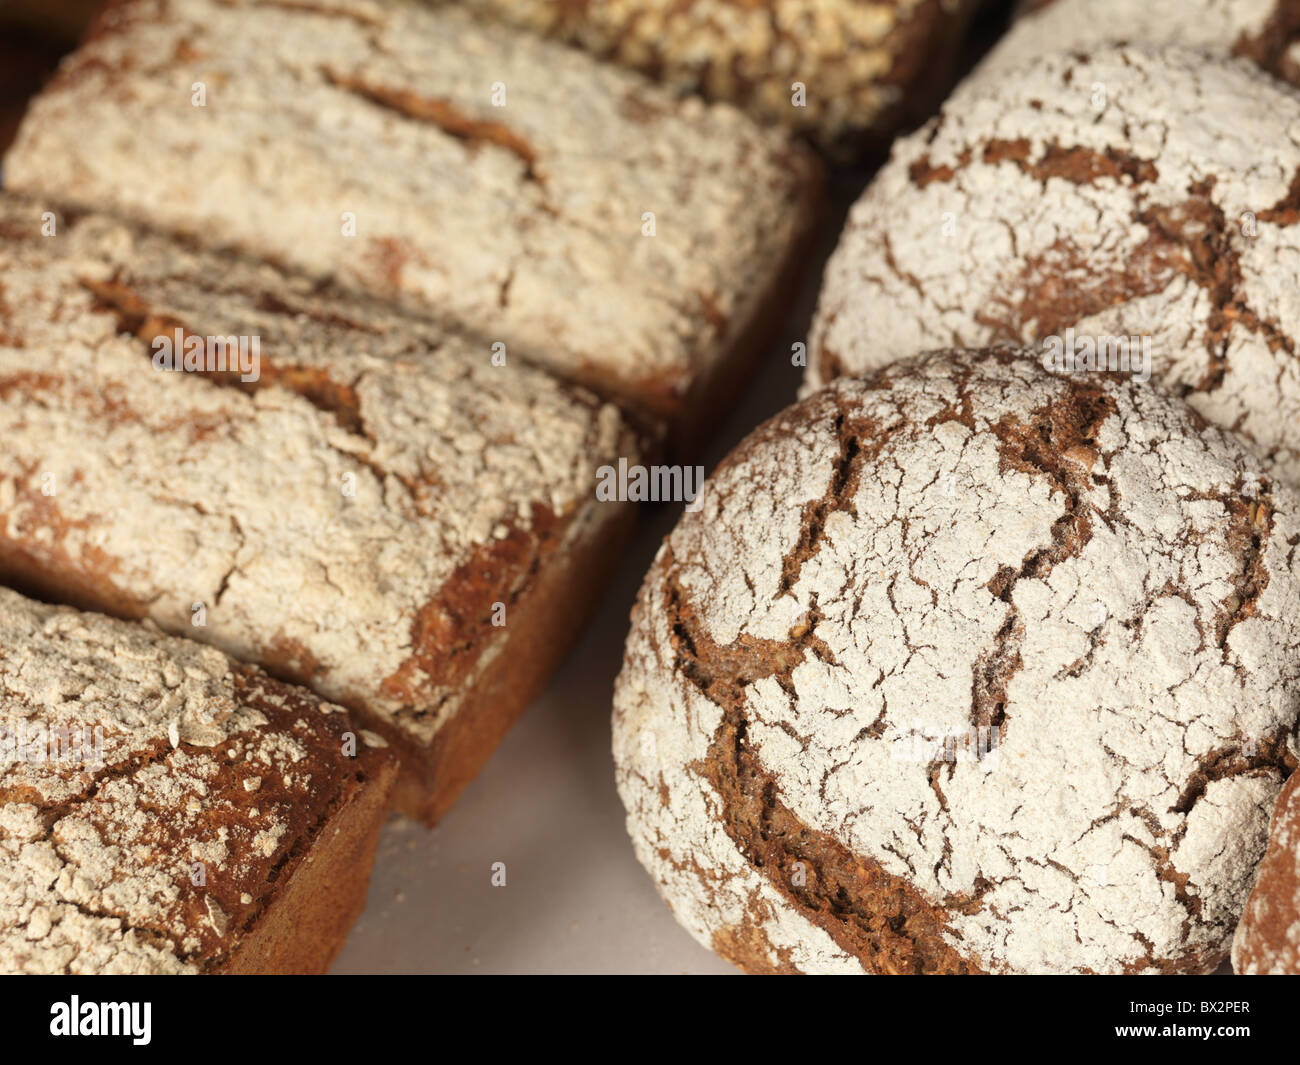 Freshly baked bread topped with flour on a tray - Stock Image